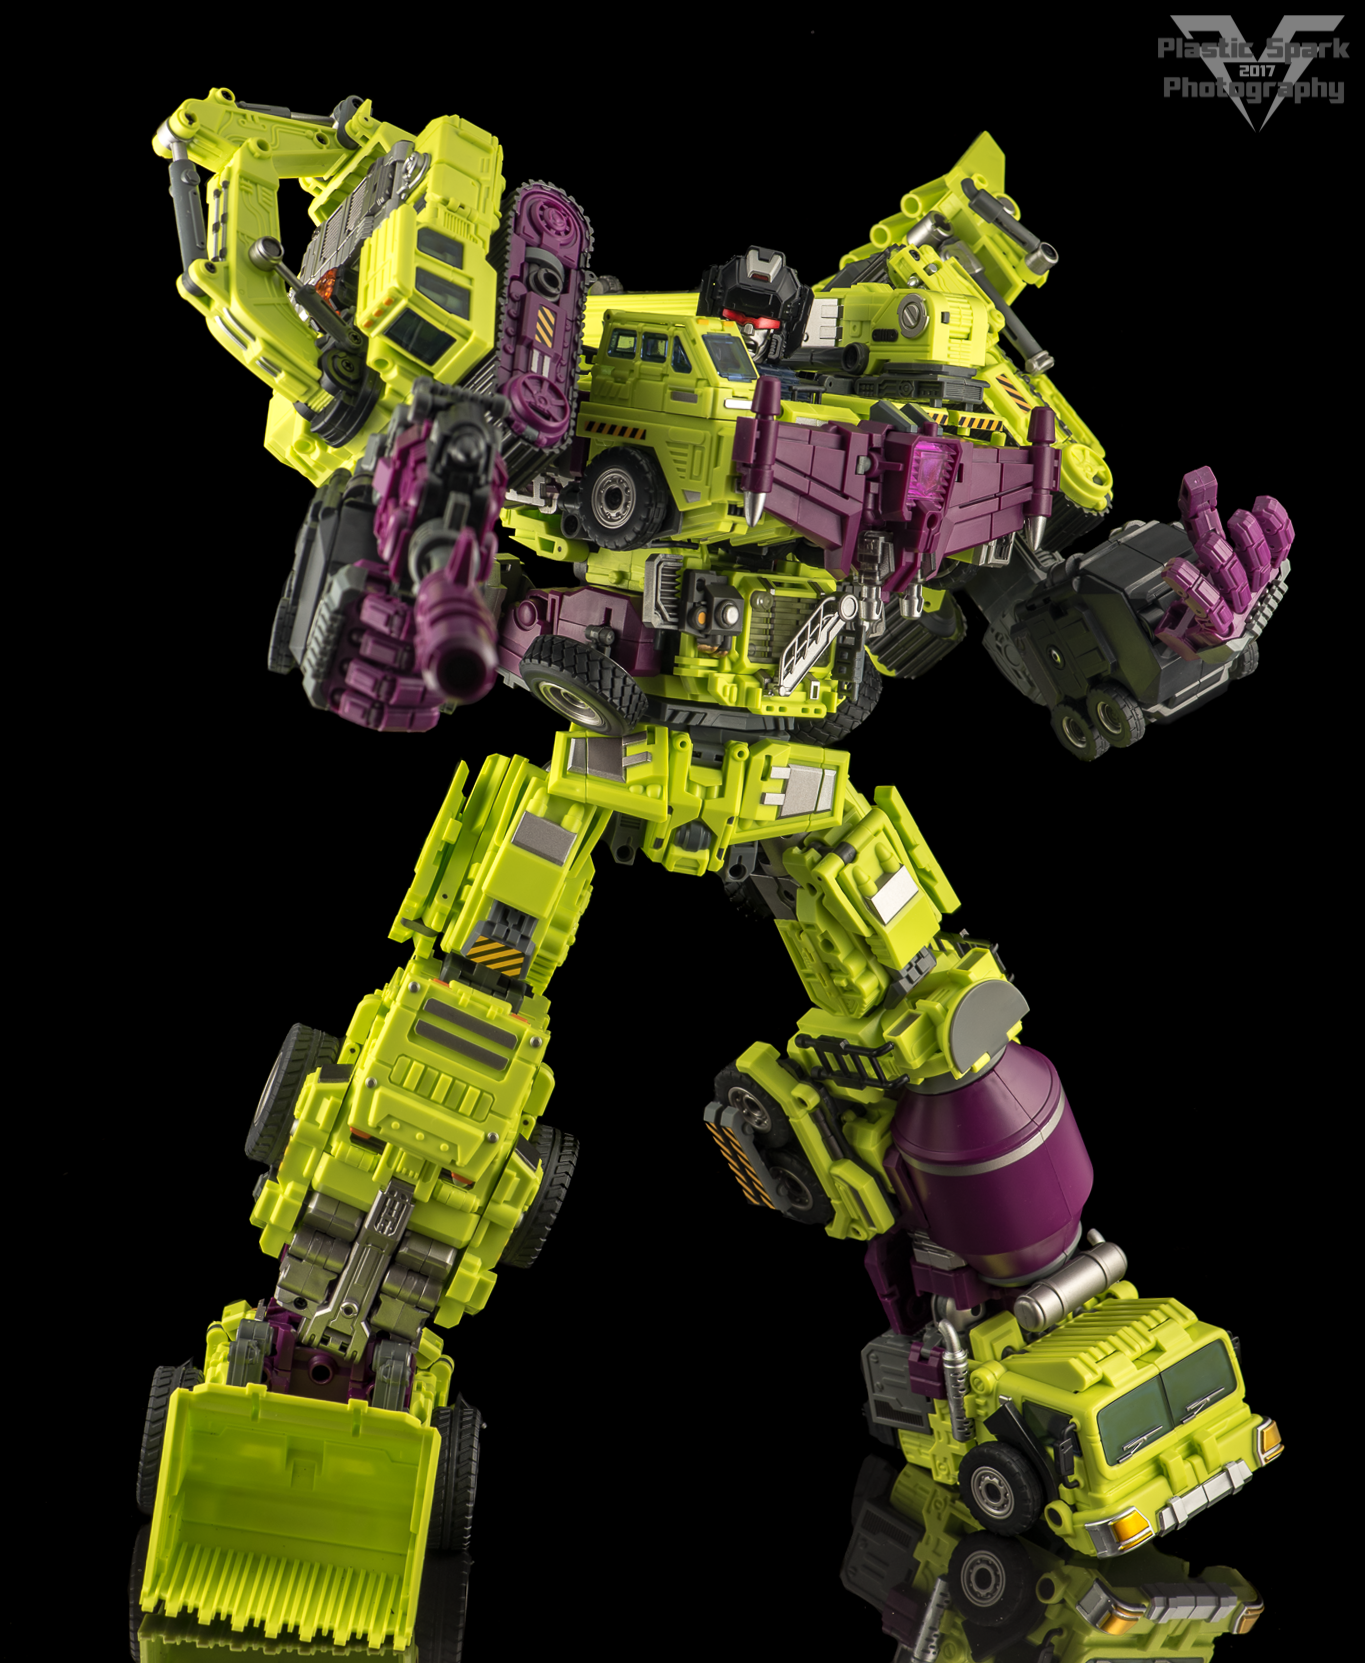 Generation-Toy-Gravity-Builder-(25-of-34).png